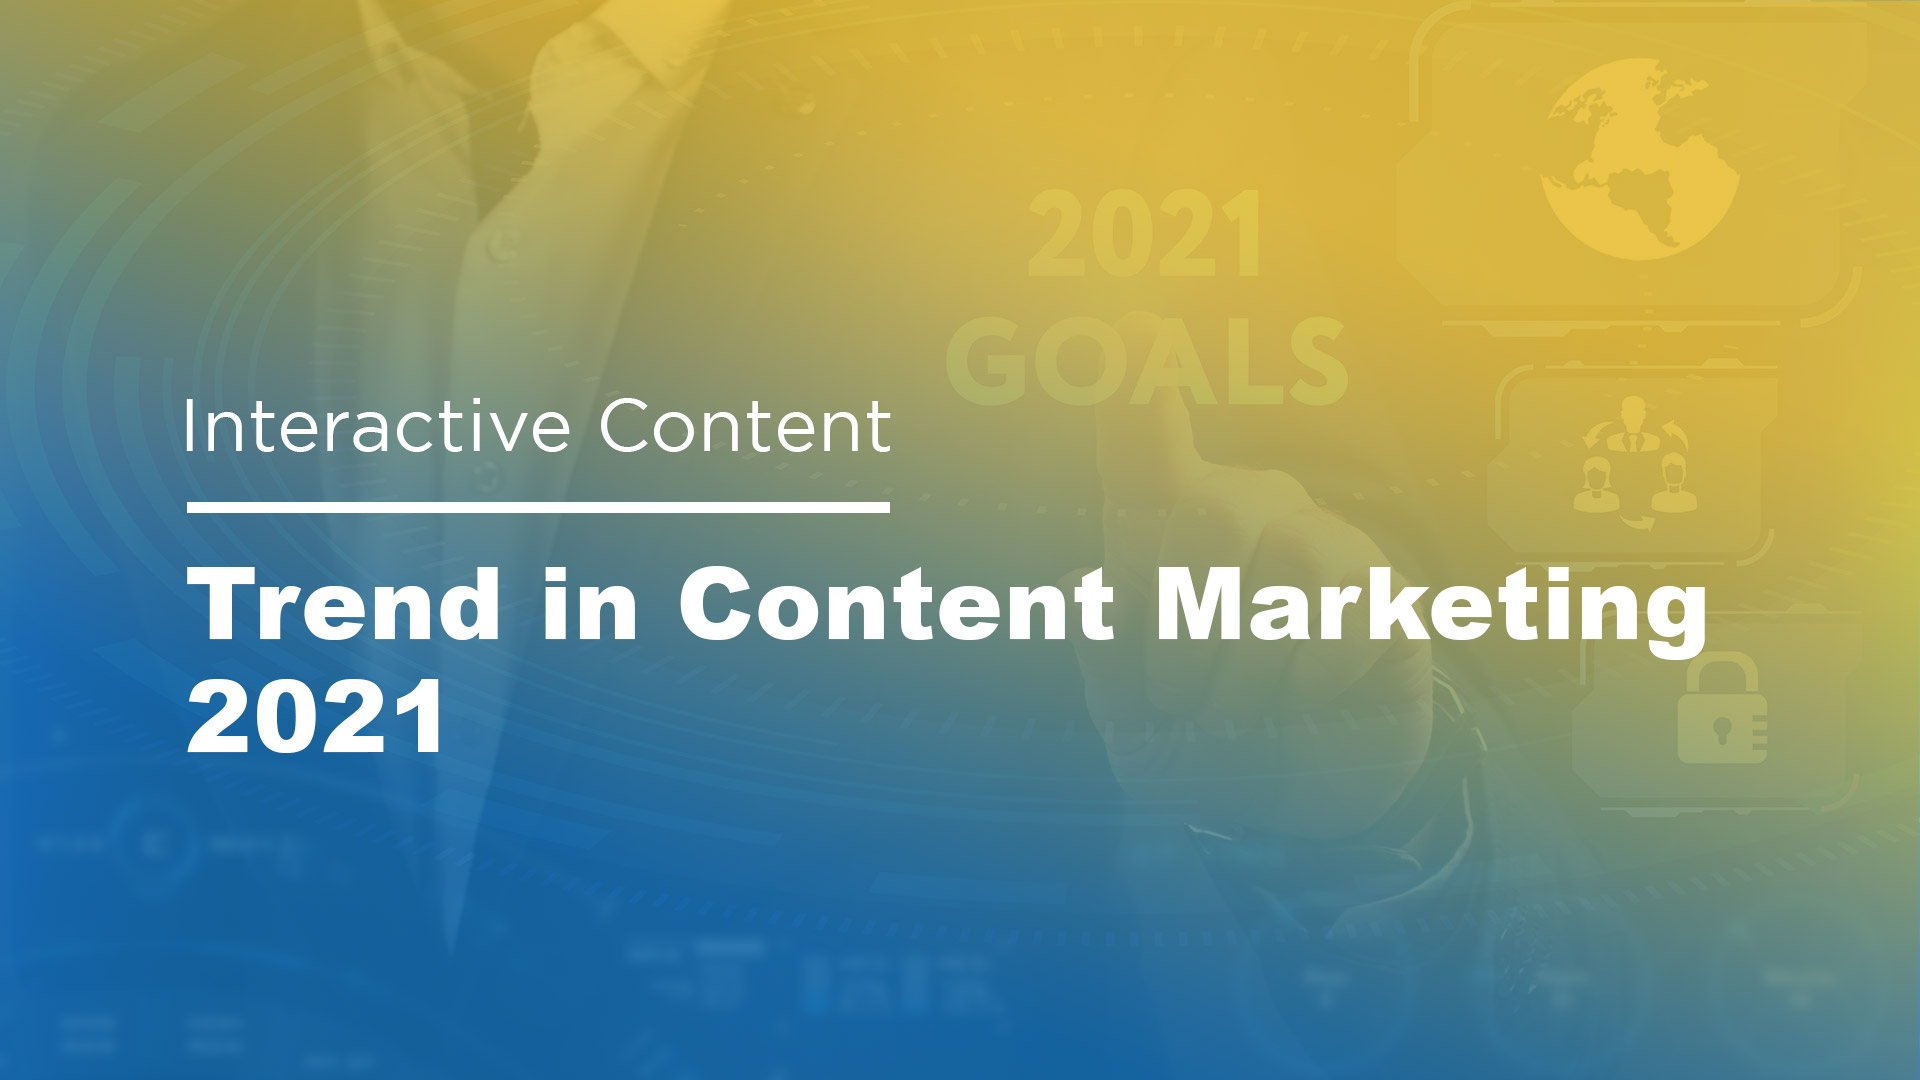 Interactive Content - Trend in Content Marketing 2021